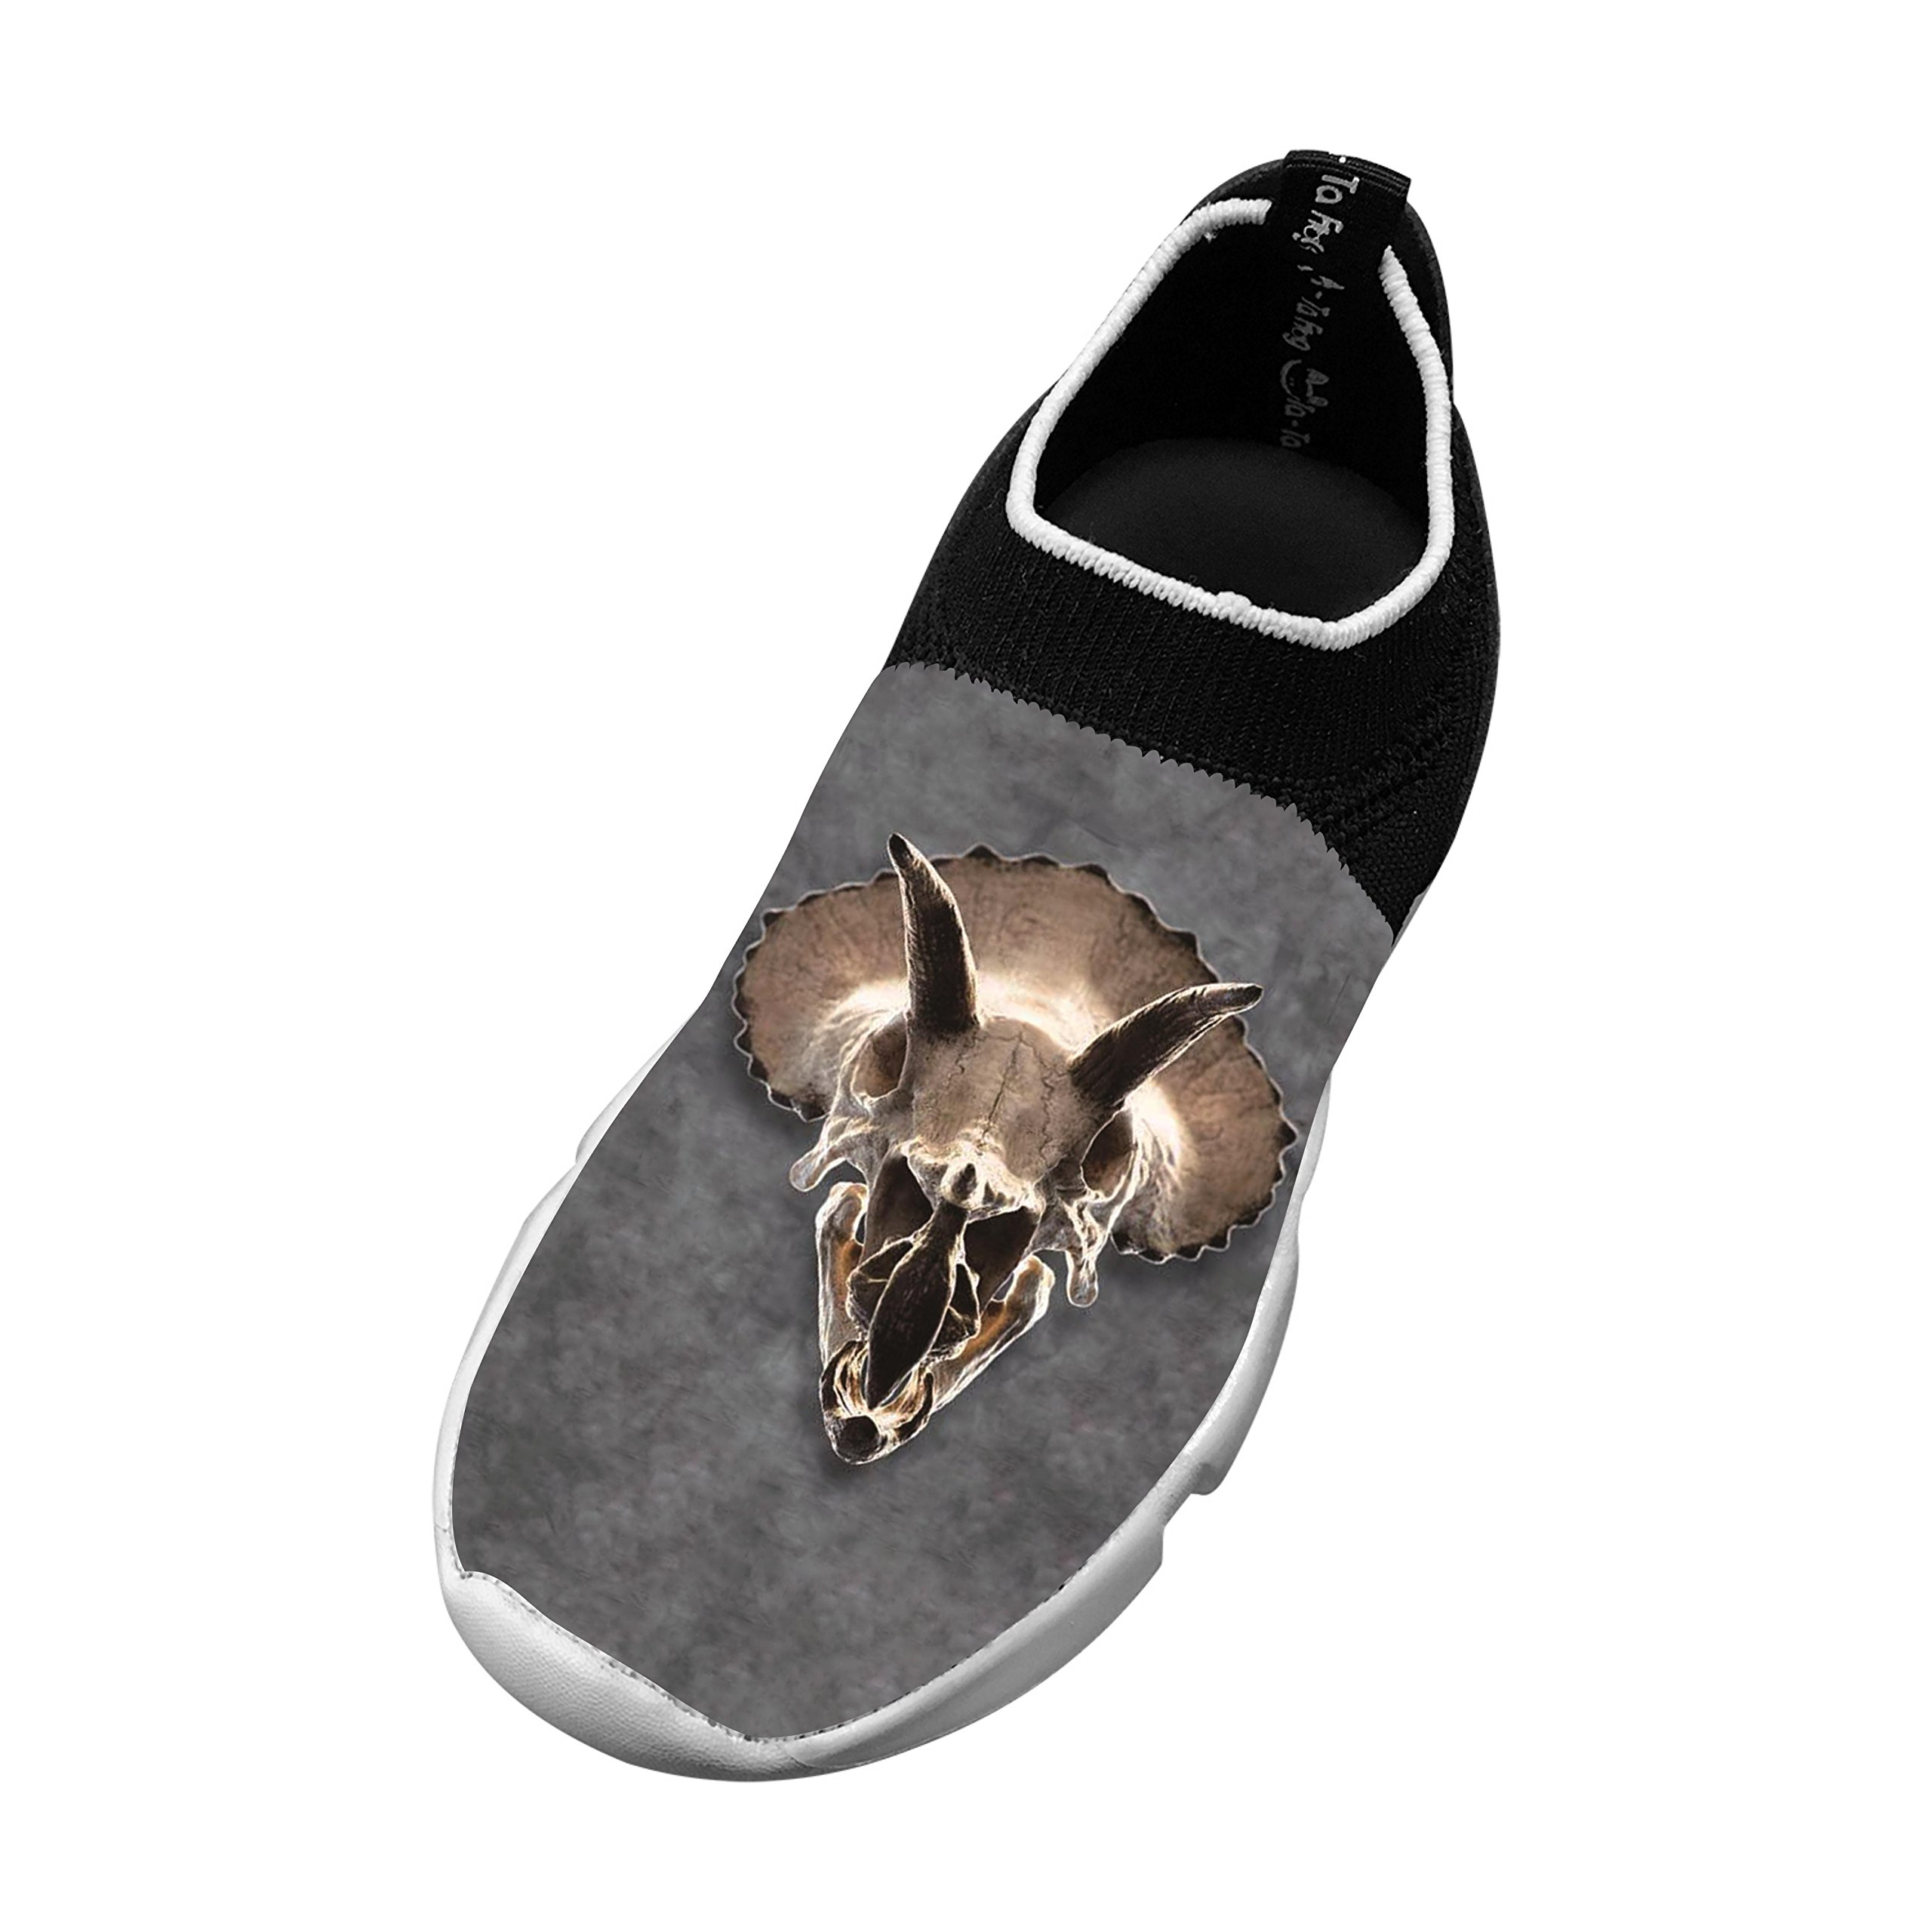 New Slim fit Flywire Knitting Shoe 3D Make Your Own With Animal Skull For Unisex Kid